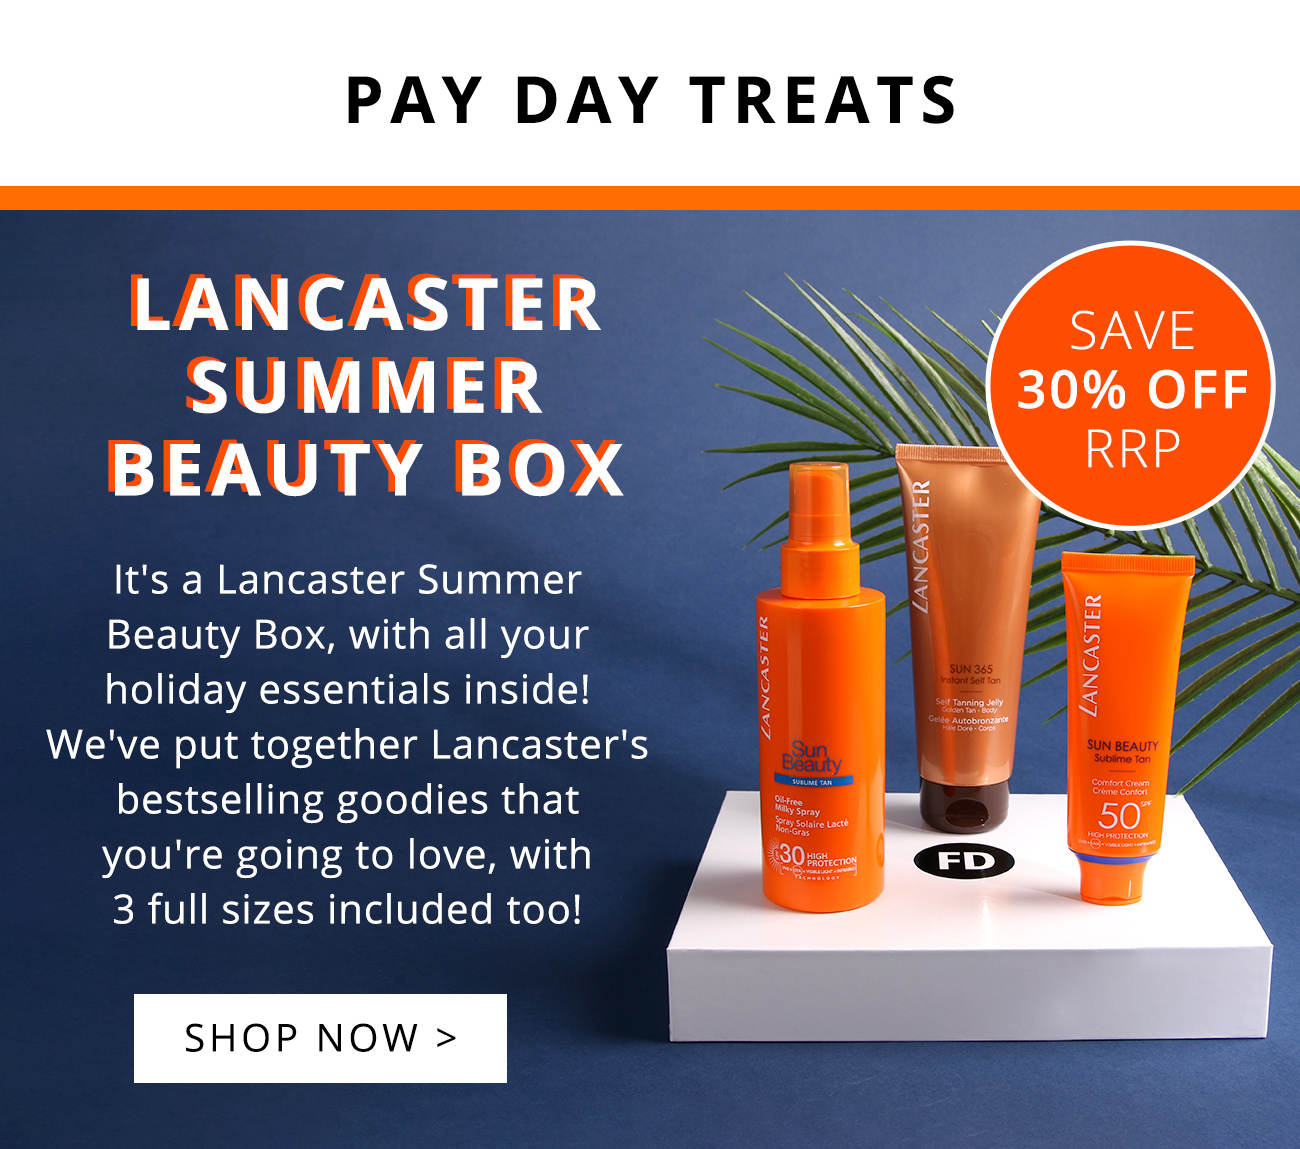 Lancaster summer beauty box. Save 30% off RRP